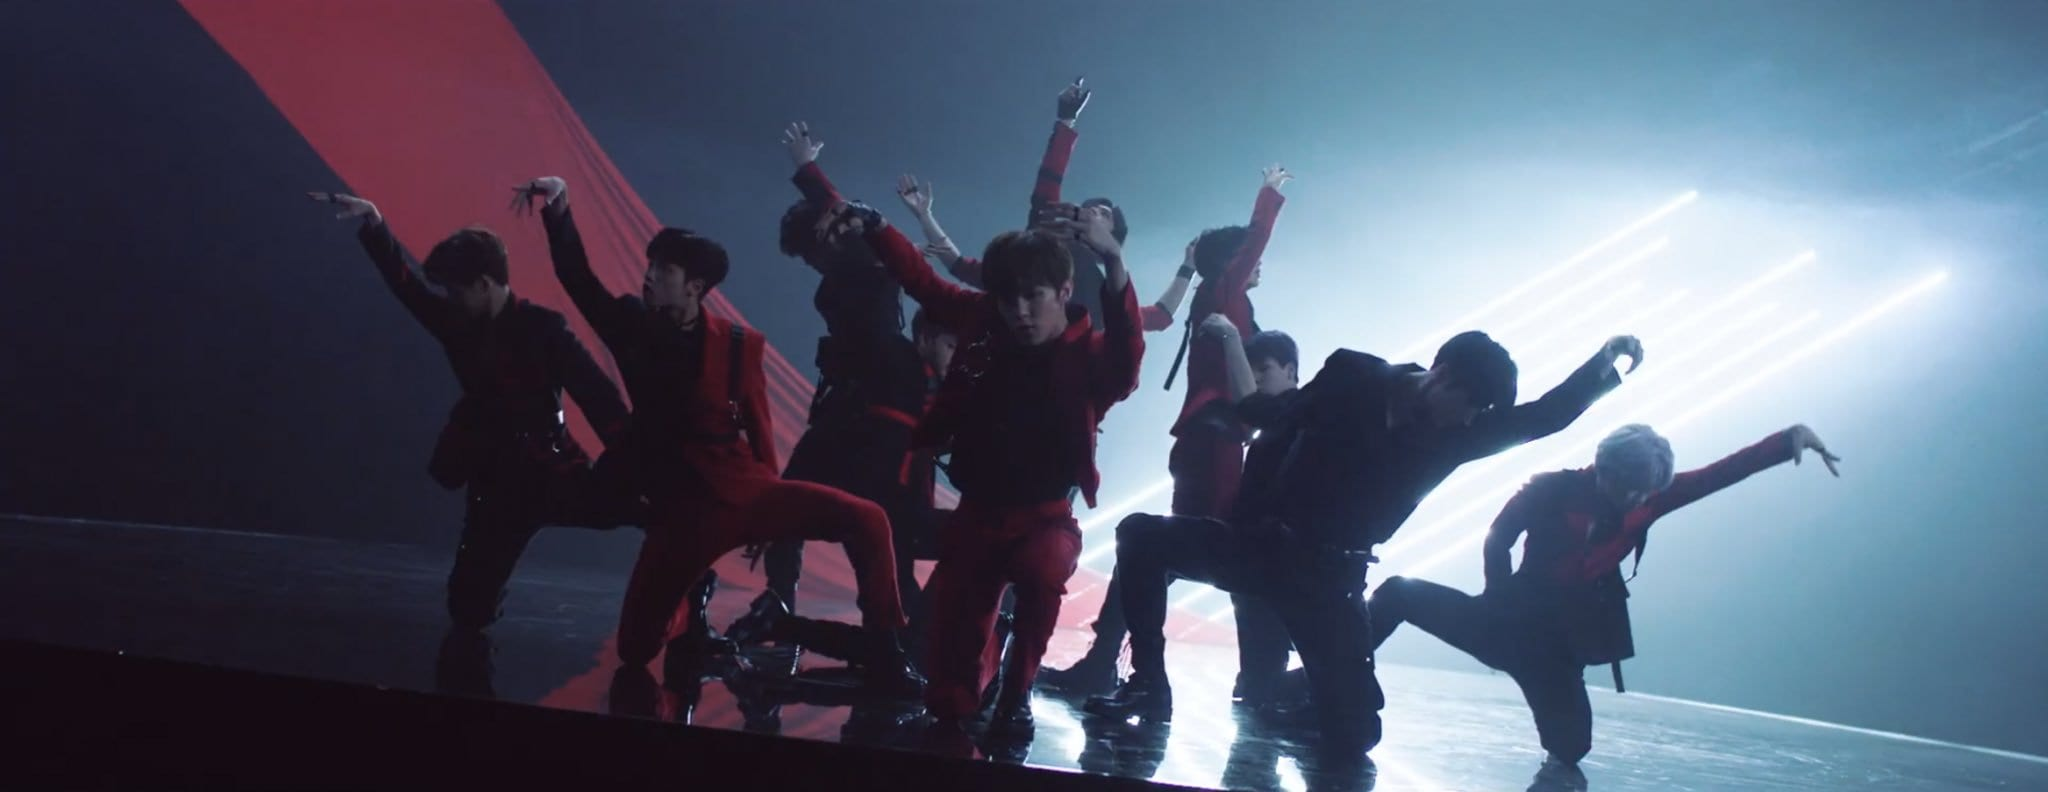 """WATCH: PDX 101's Final Team X1 Makes Thrilling Debut With """"FLASH"""" MV"""